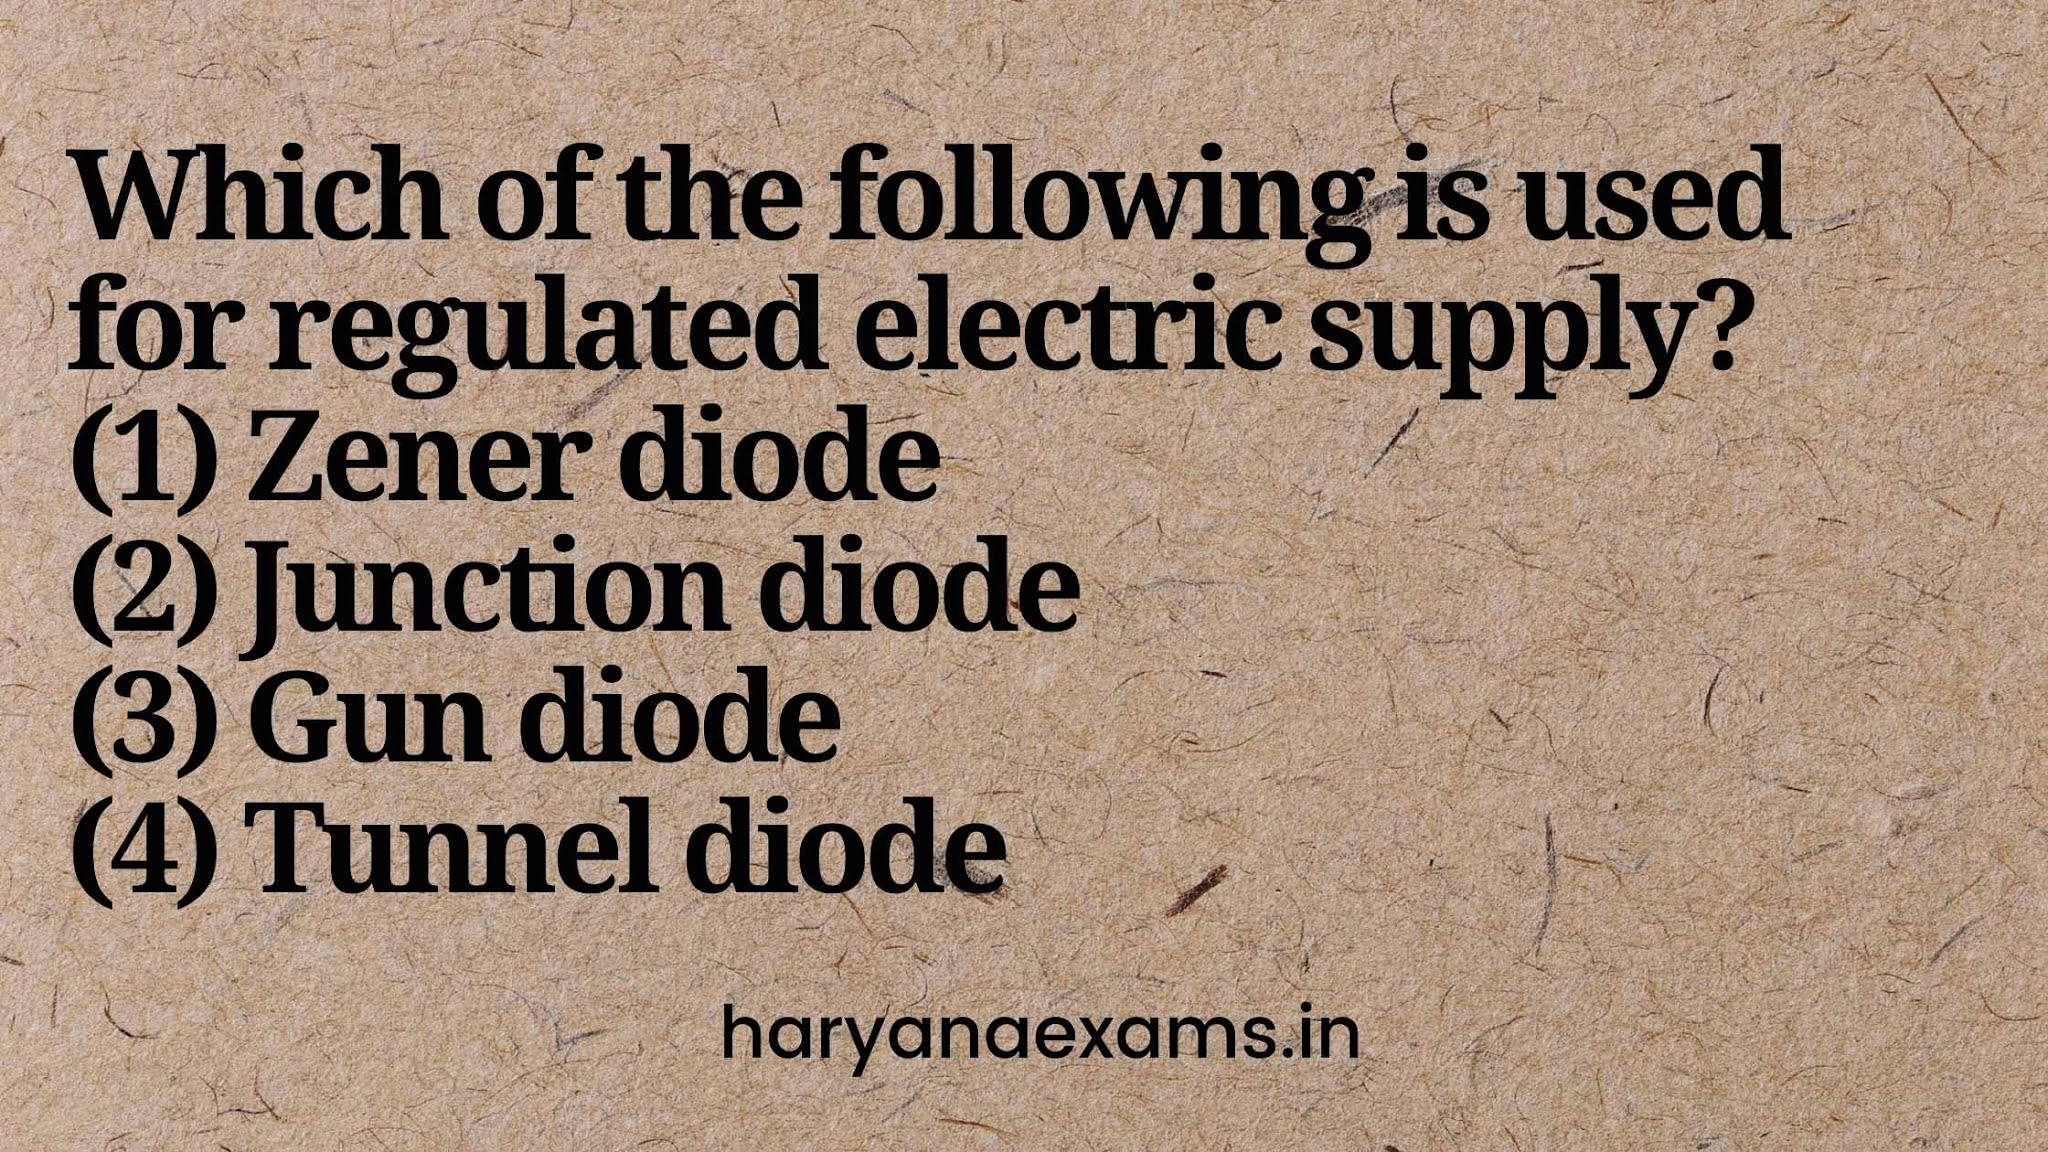 Which of the following is used for regulated electric supply?   (1) Zener diode   (2) Junction diode   (3) Gun diode   (4) Tunnel diode